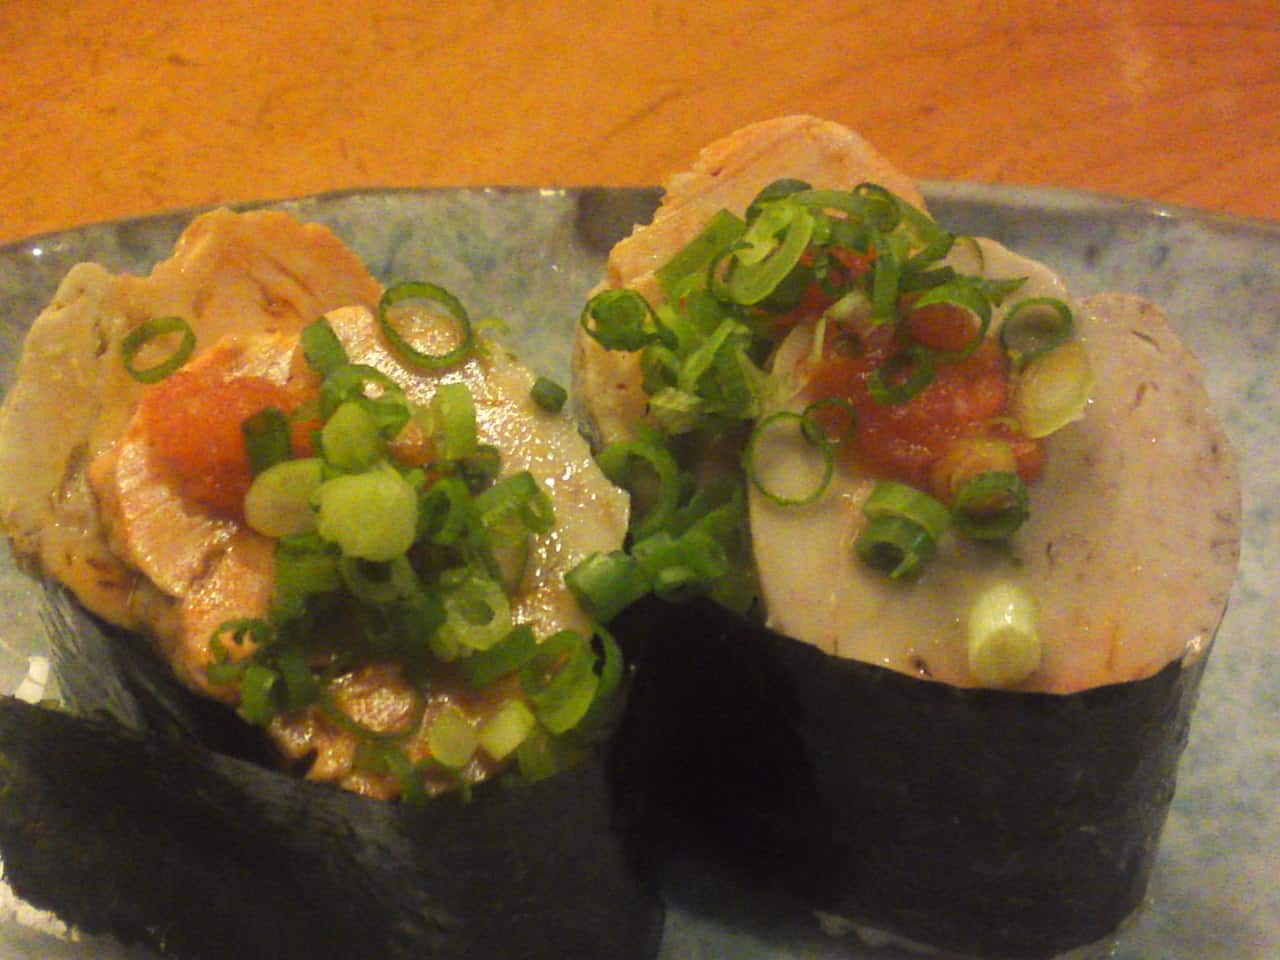 """""""Ankimo/Steamed monkfish liver in Japanese sake and preserved like a terrine"""" seasoned with momiji oroshi and chopped scallion! """"Ankimo"""" is also called """"Japanese foie gras"""""""